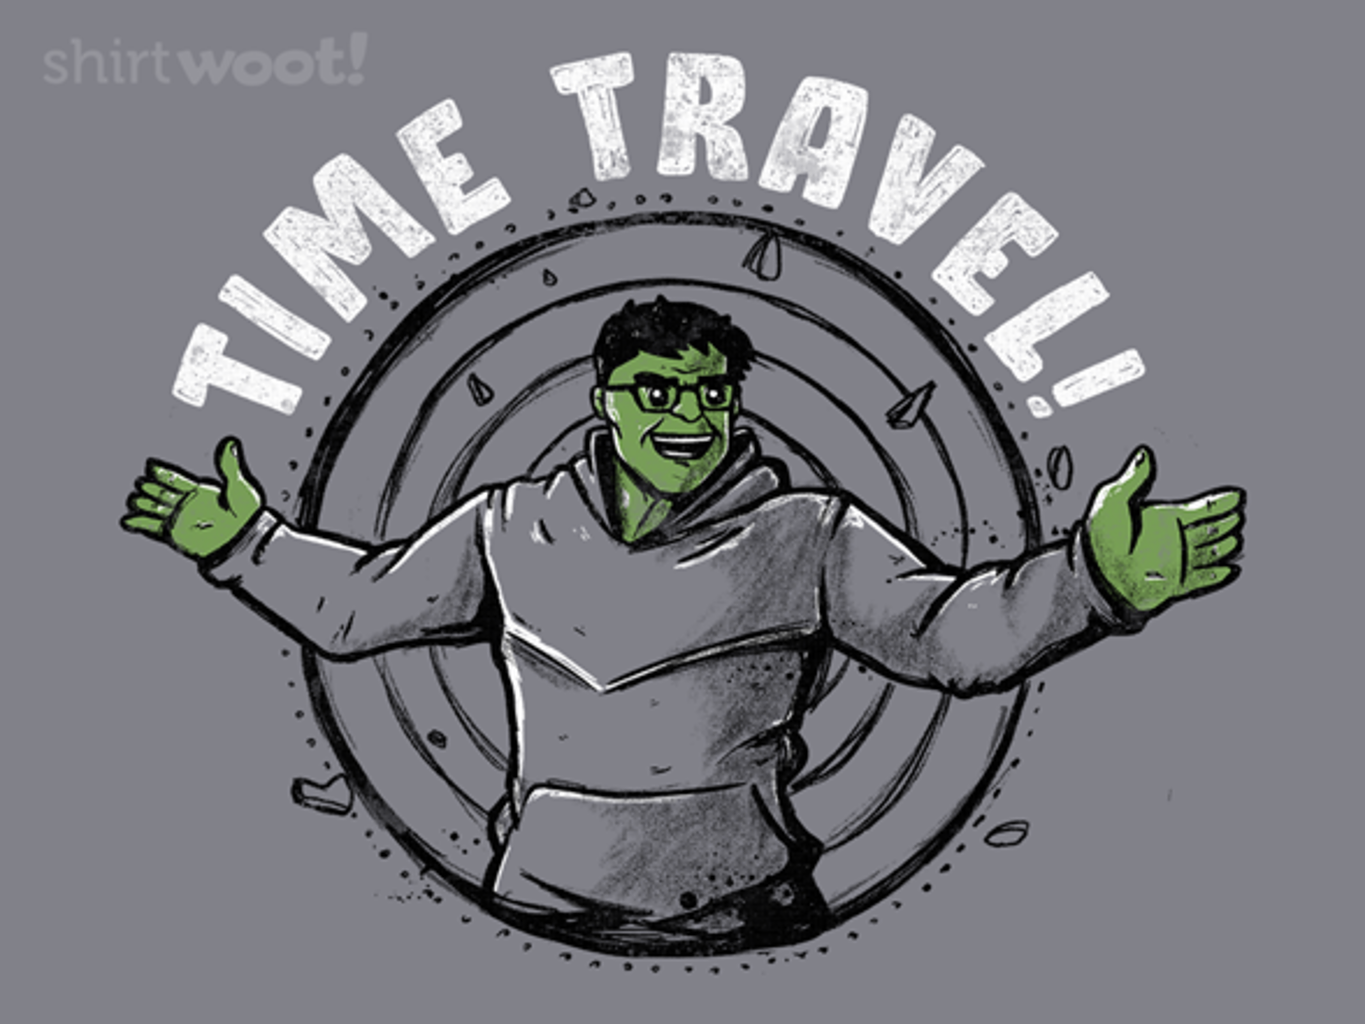 Woot!: Time Travel!